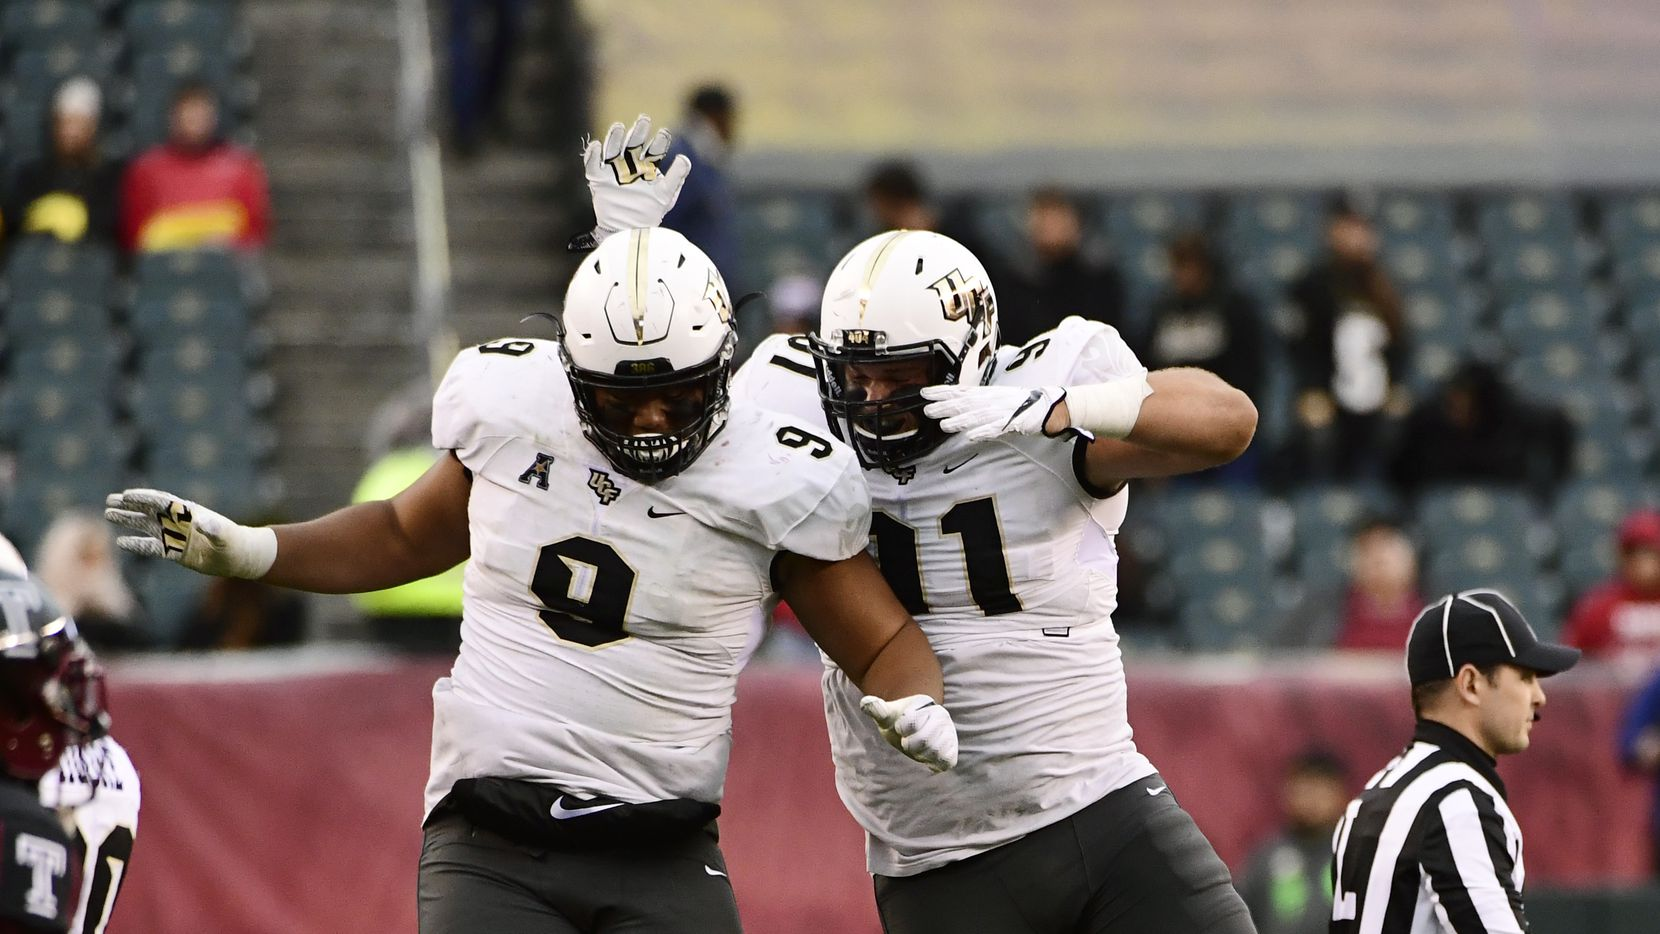 PHILADELPHIA, PA - NOVEMBER 18: Trysten Hill #9 of the UCF Knights and teammate Joey Connors #91 air bump after a stop against the Temple Owls during the third quarter at Lincoln Financial Field on November 18, 2017 in Philadelphia, Pennsylvania. UCF defeated Temple 45-19. (Photo by Corey Perrine/Getty Images)